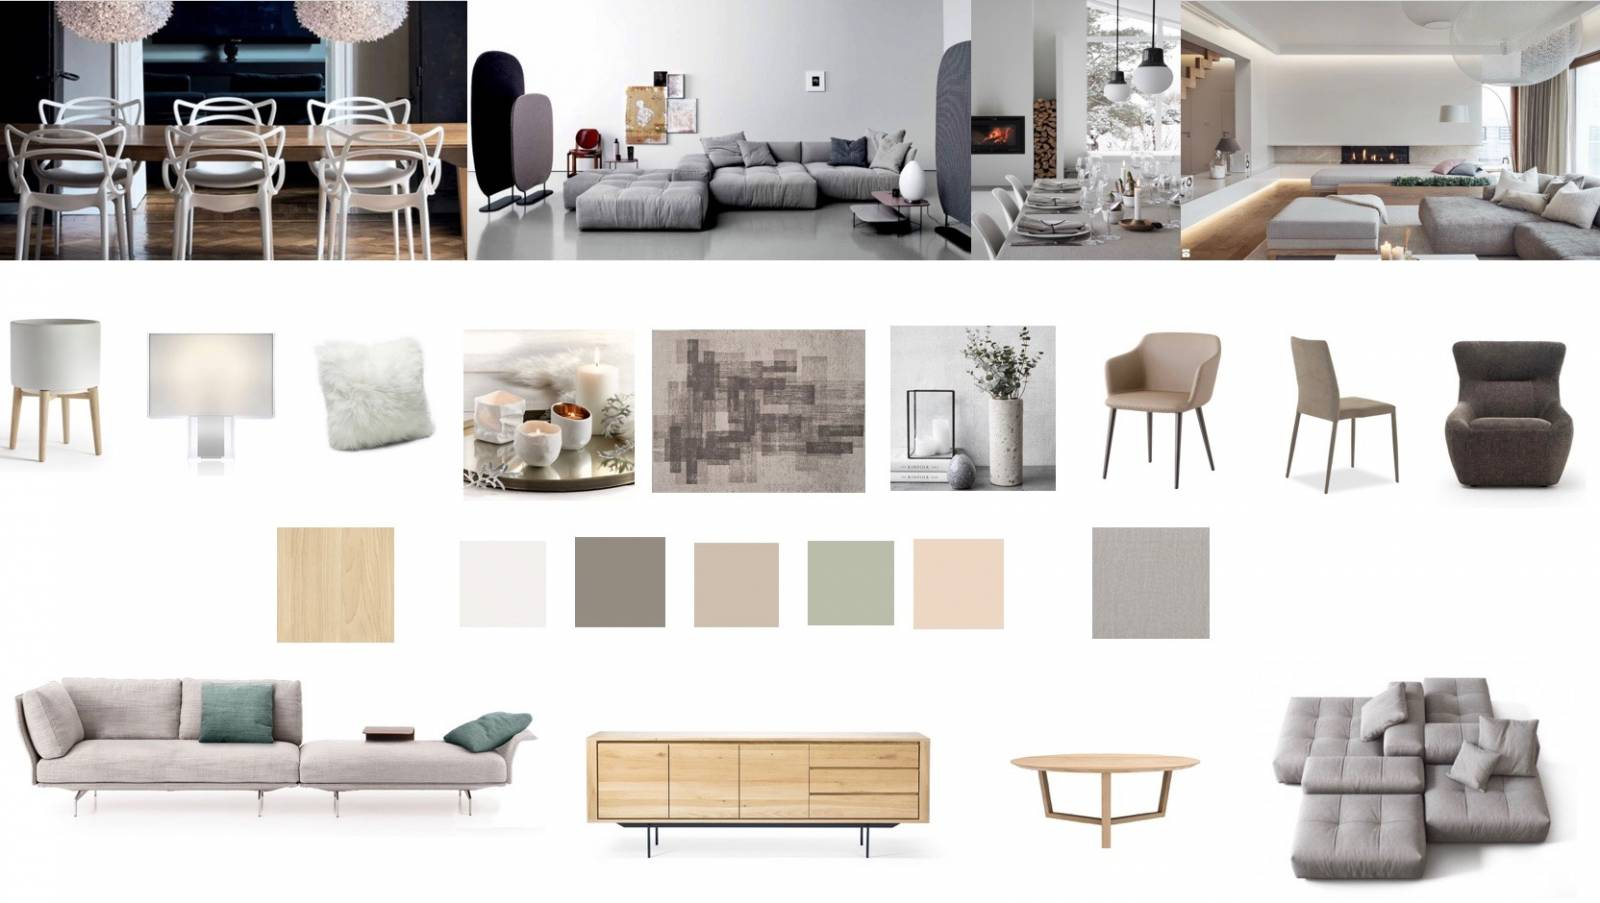 Decoration Interieur Design Contemporain les tendances déco 2019: le style contemporain cosy